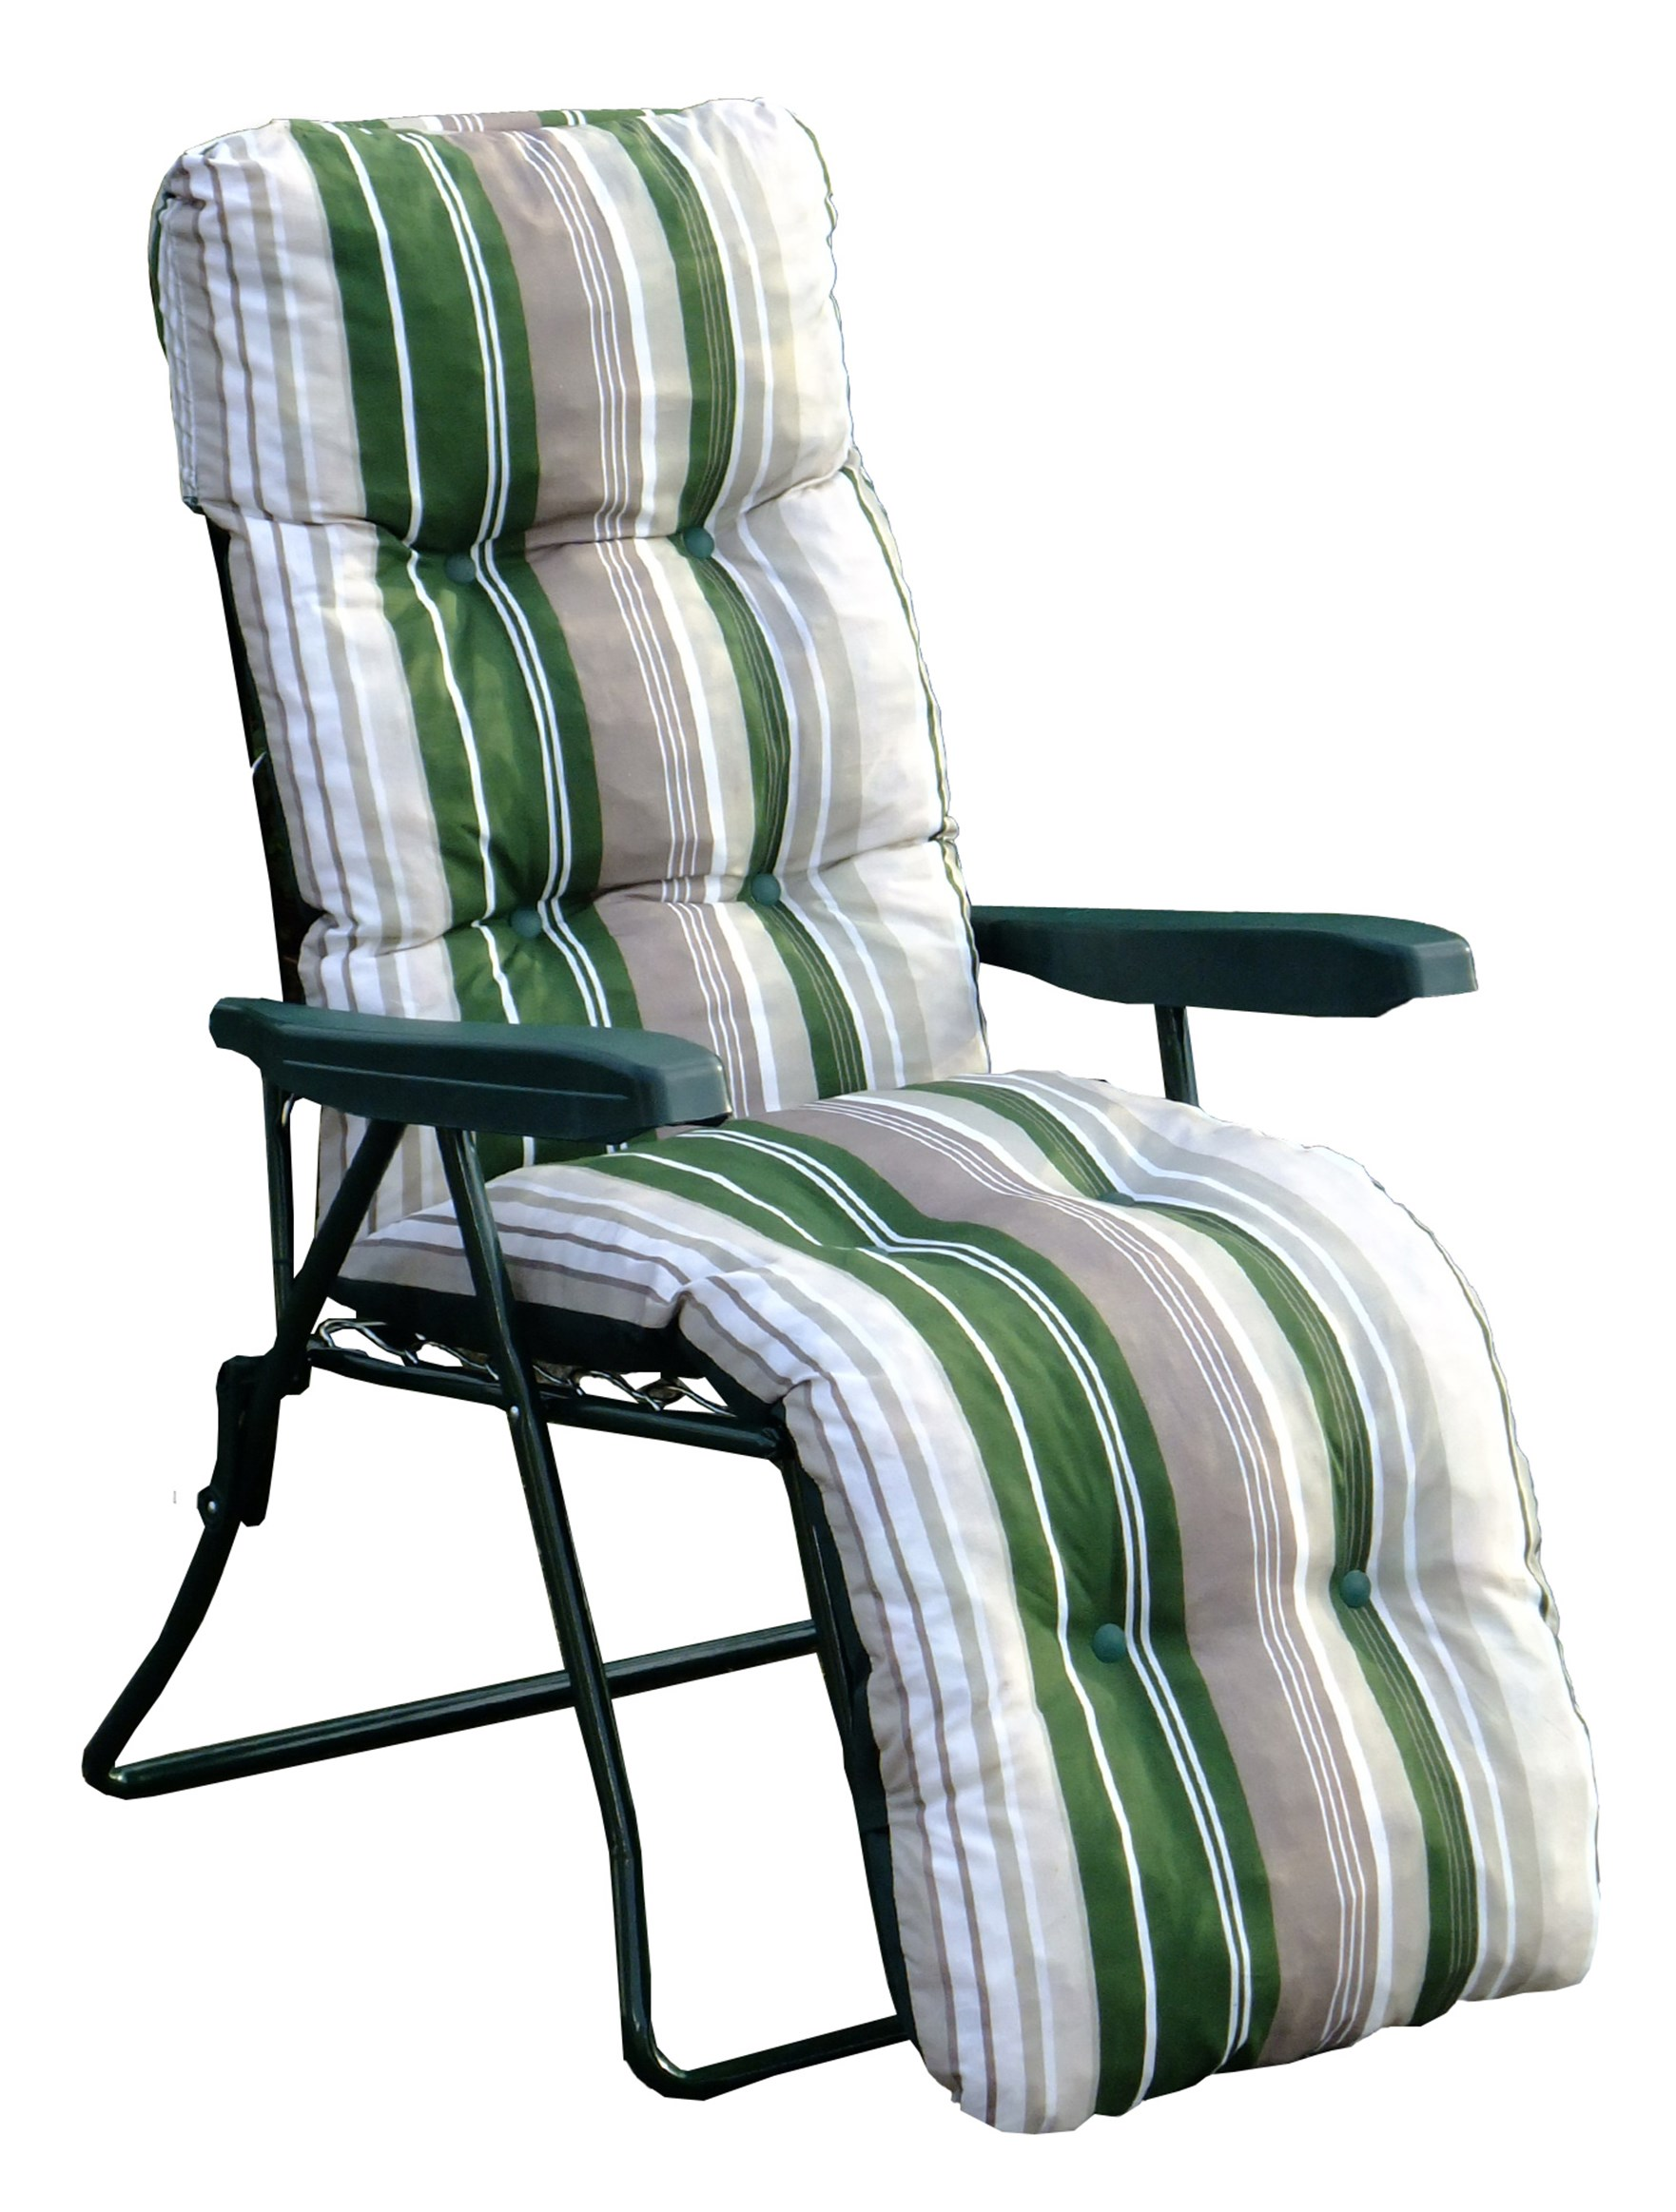 Culcita Multi Position Relaxer Patio Chairs Topline Ie